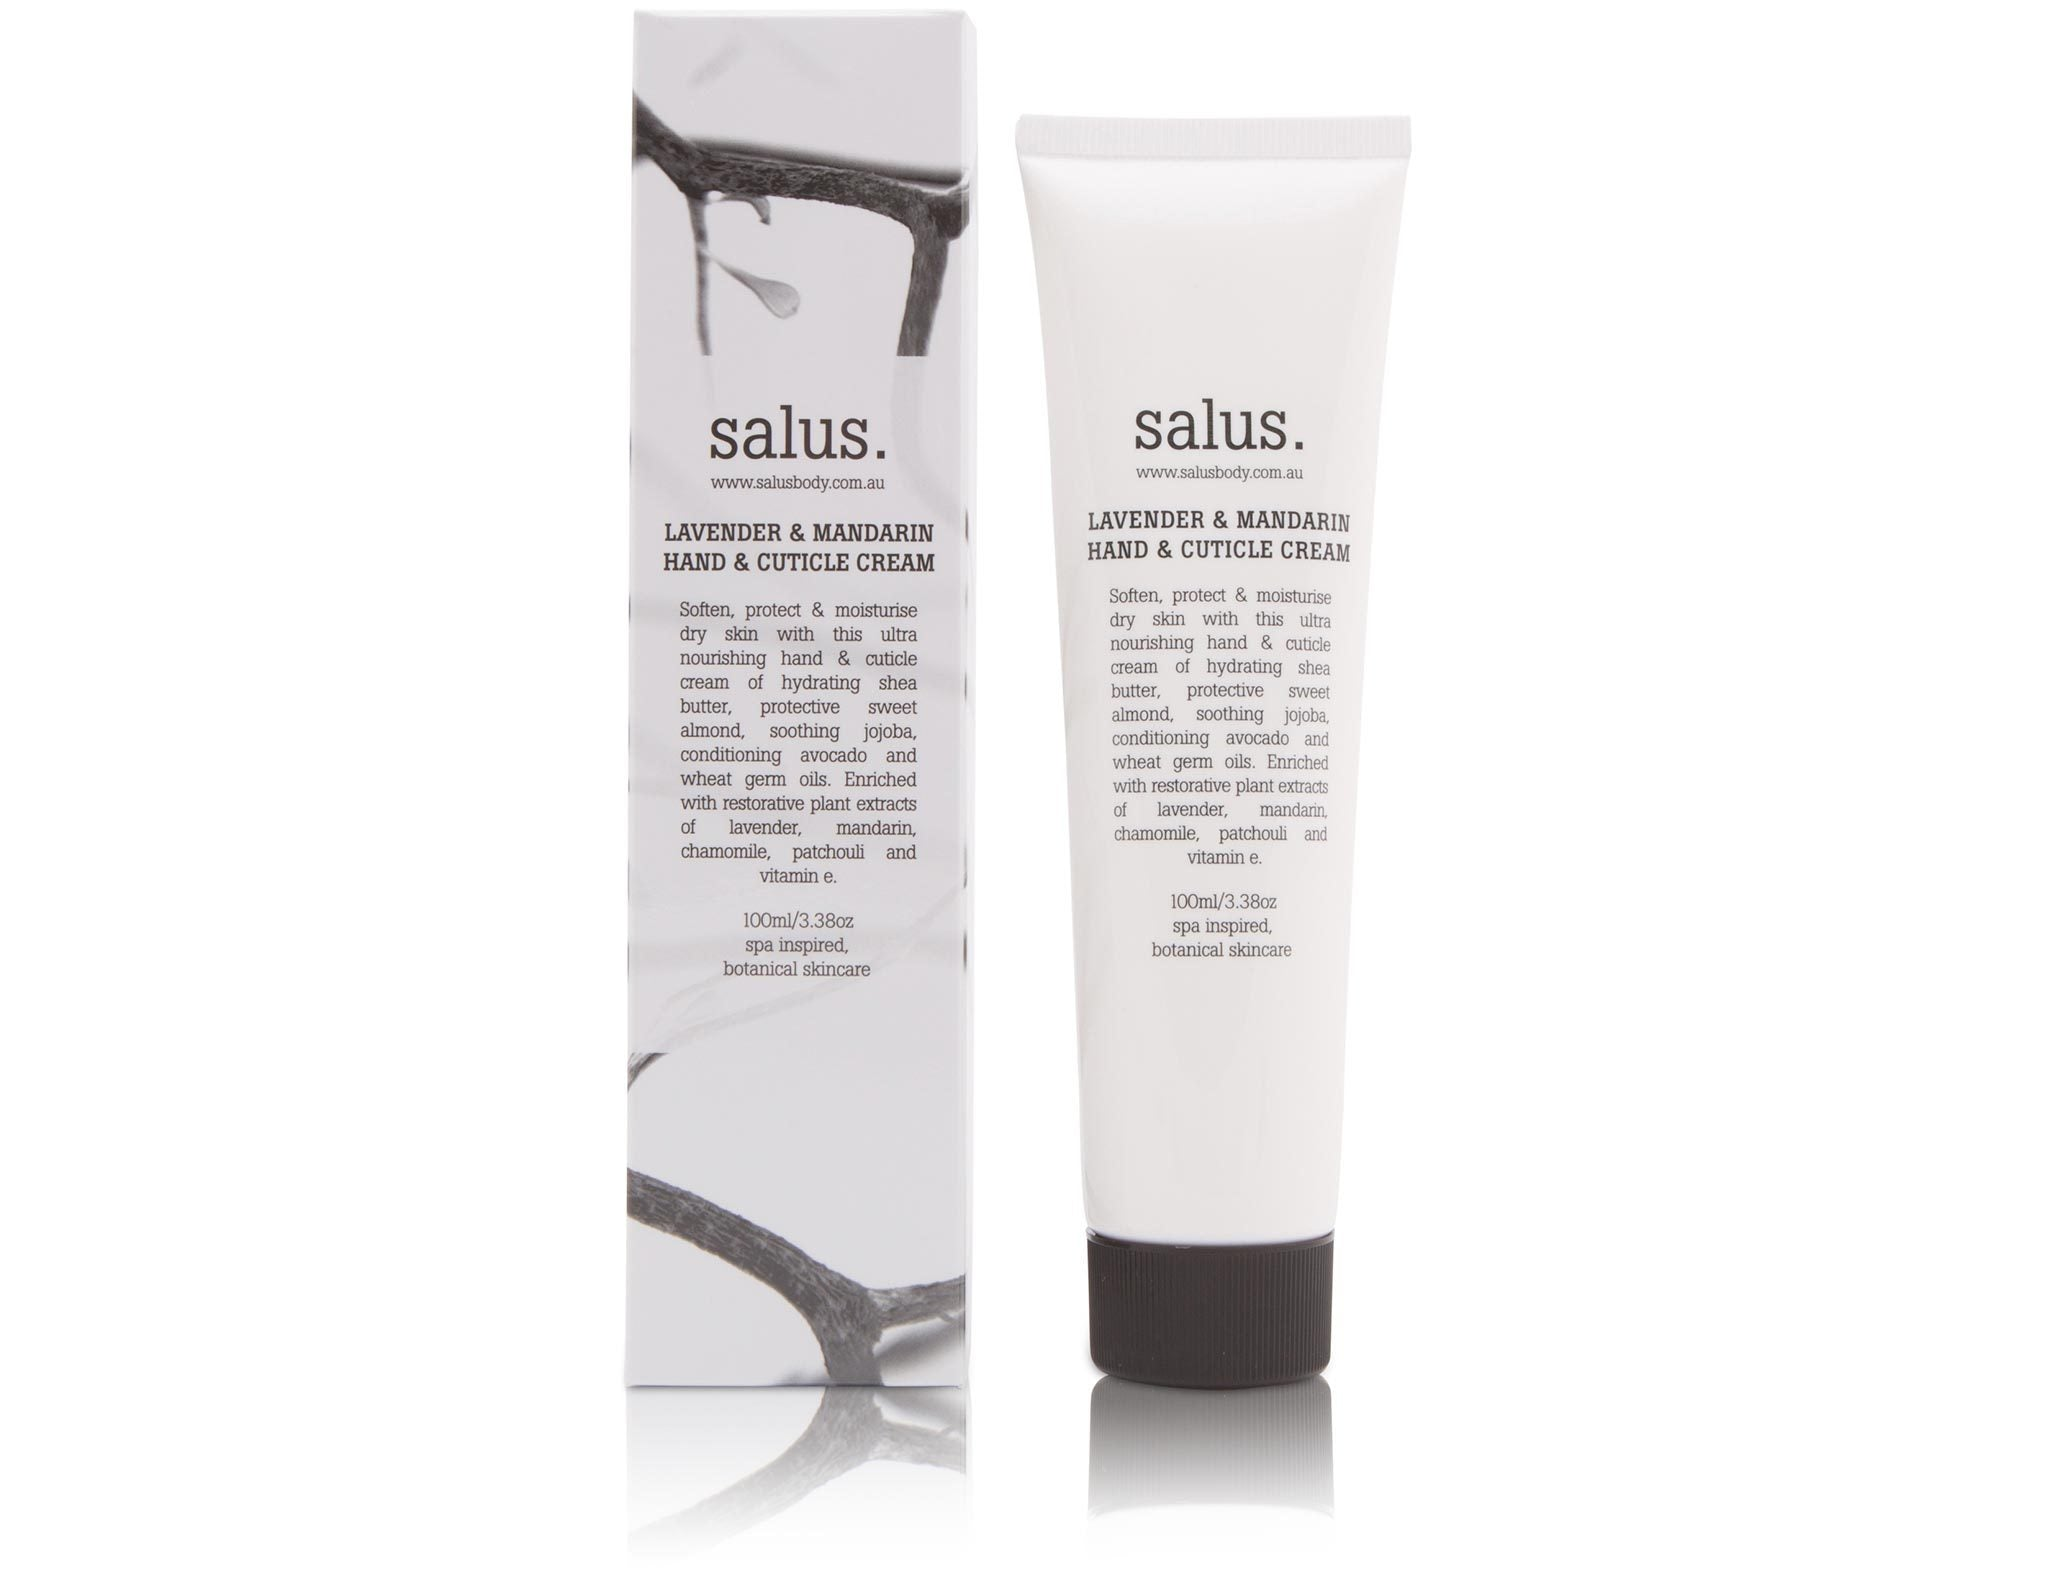 Salus Body - 100ml Lavender & Mandarin Hand & Cuticle Cream